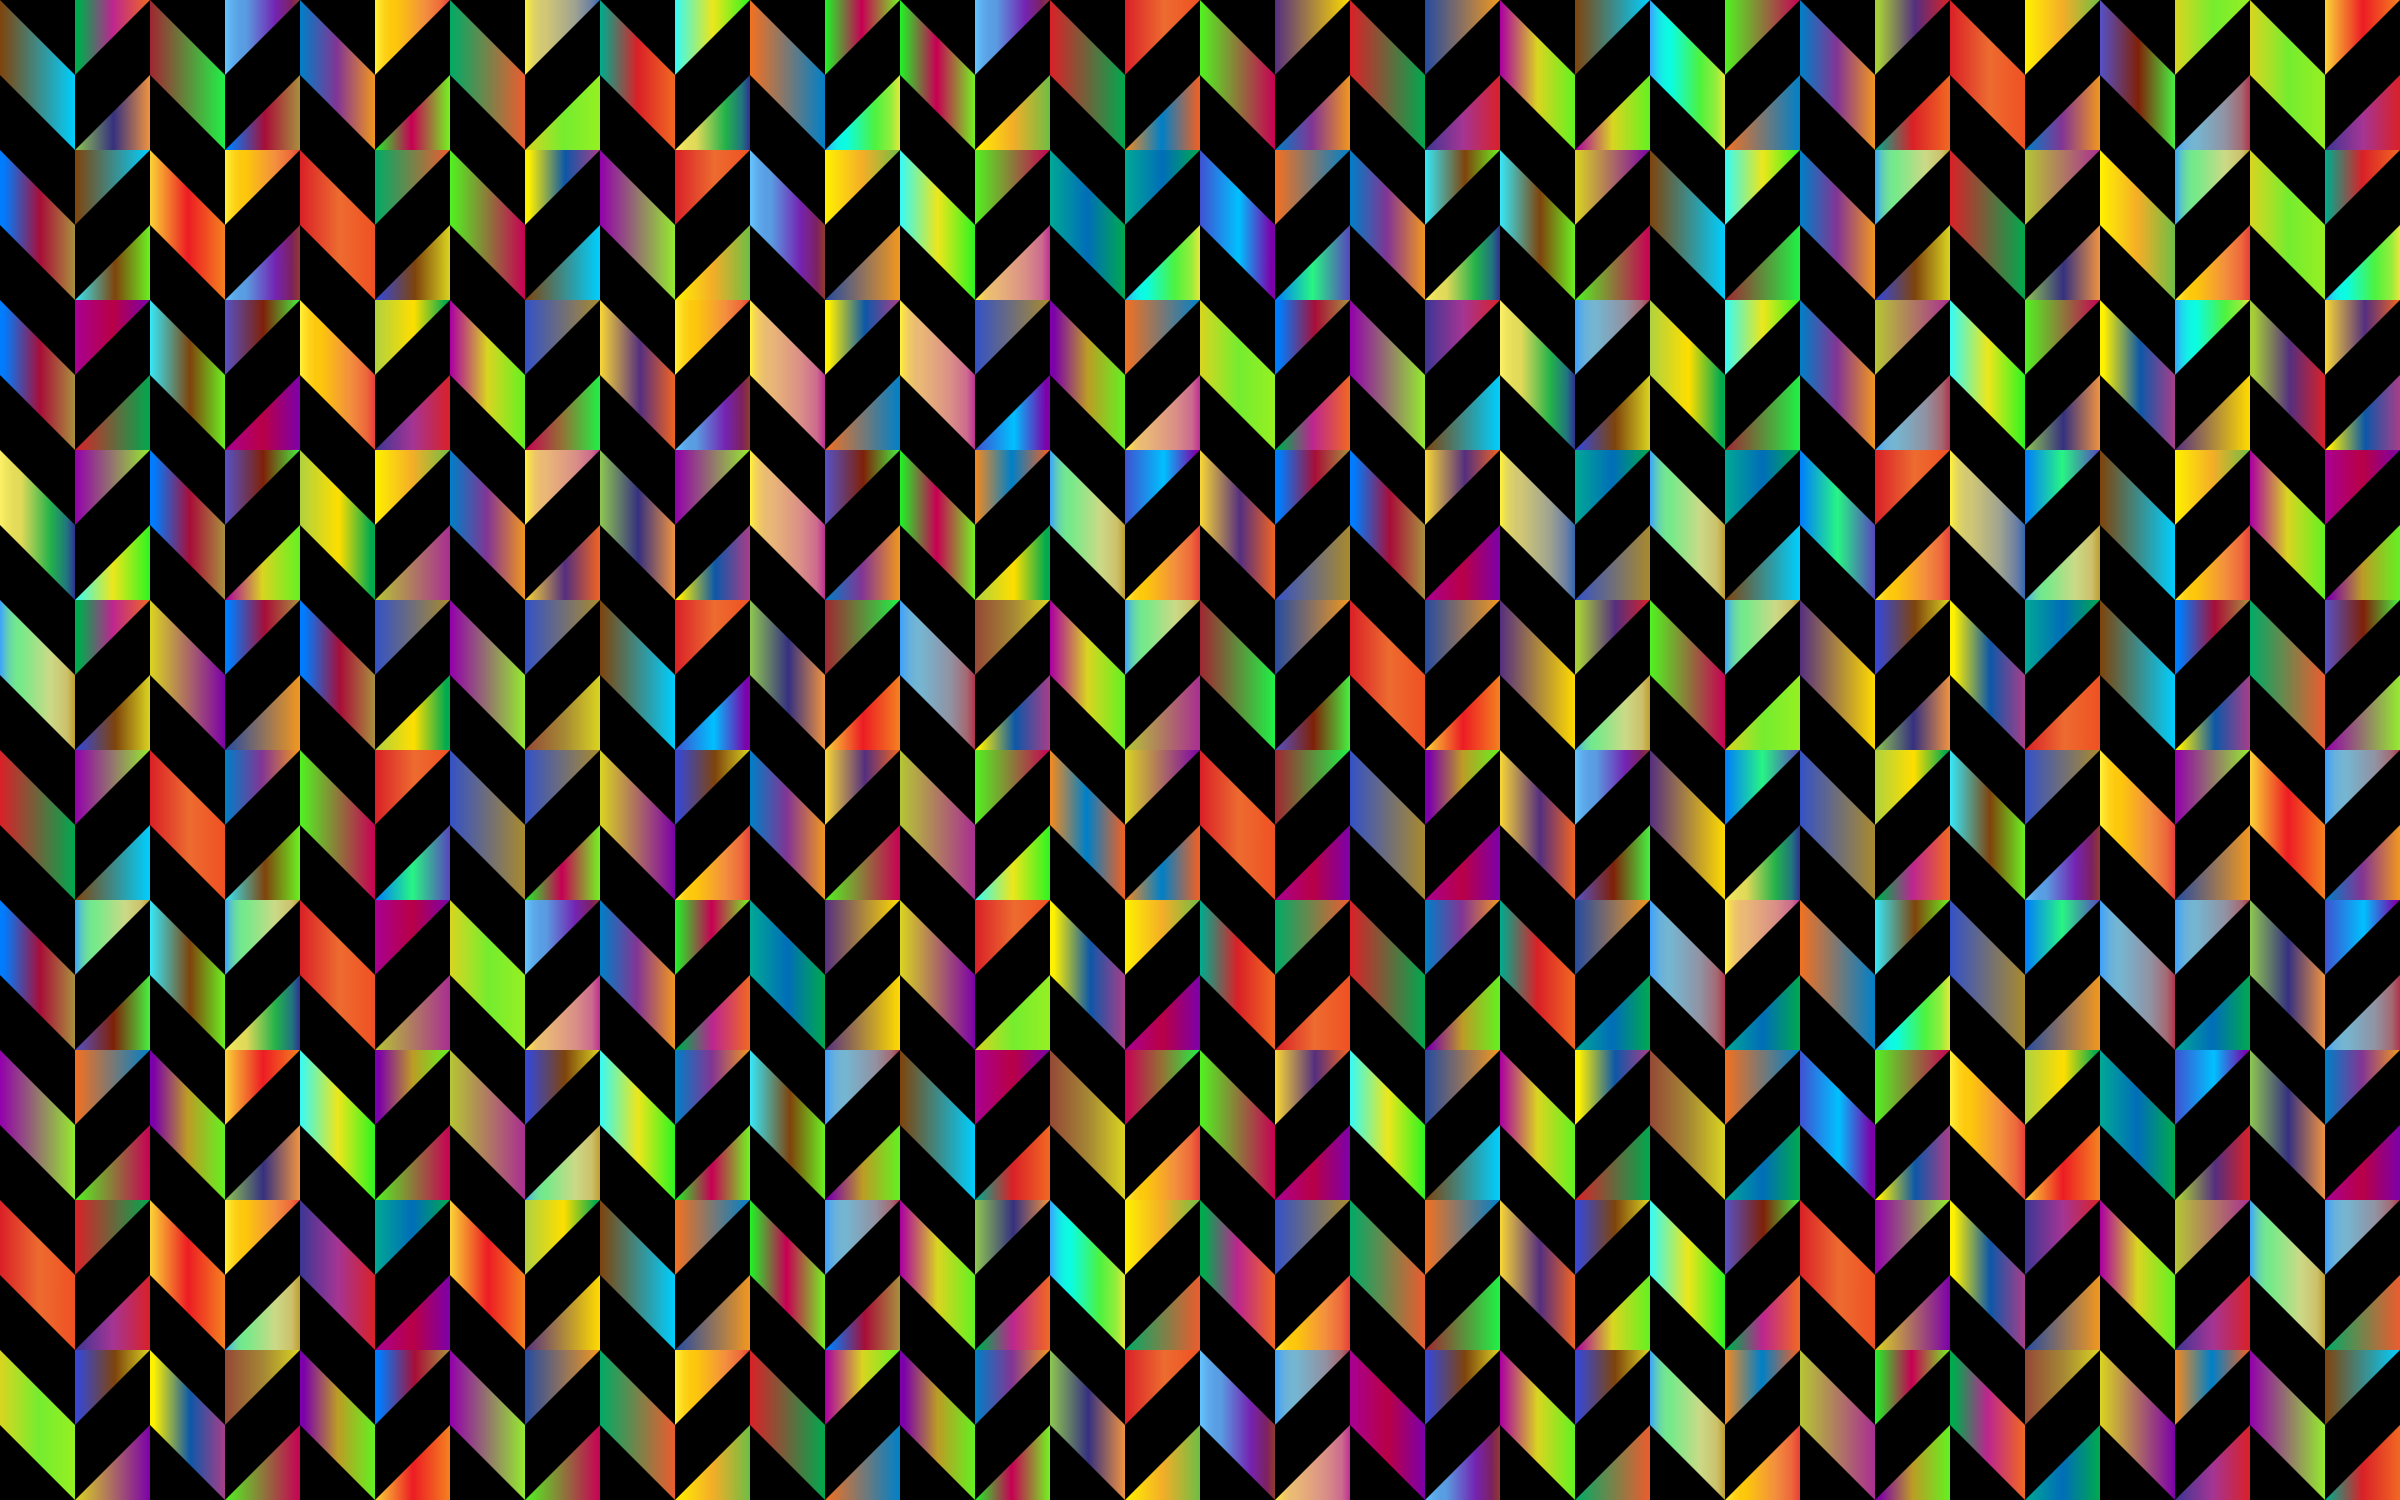 Prismatic Geometric Pattern Background 2 by GDJ